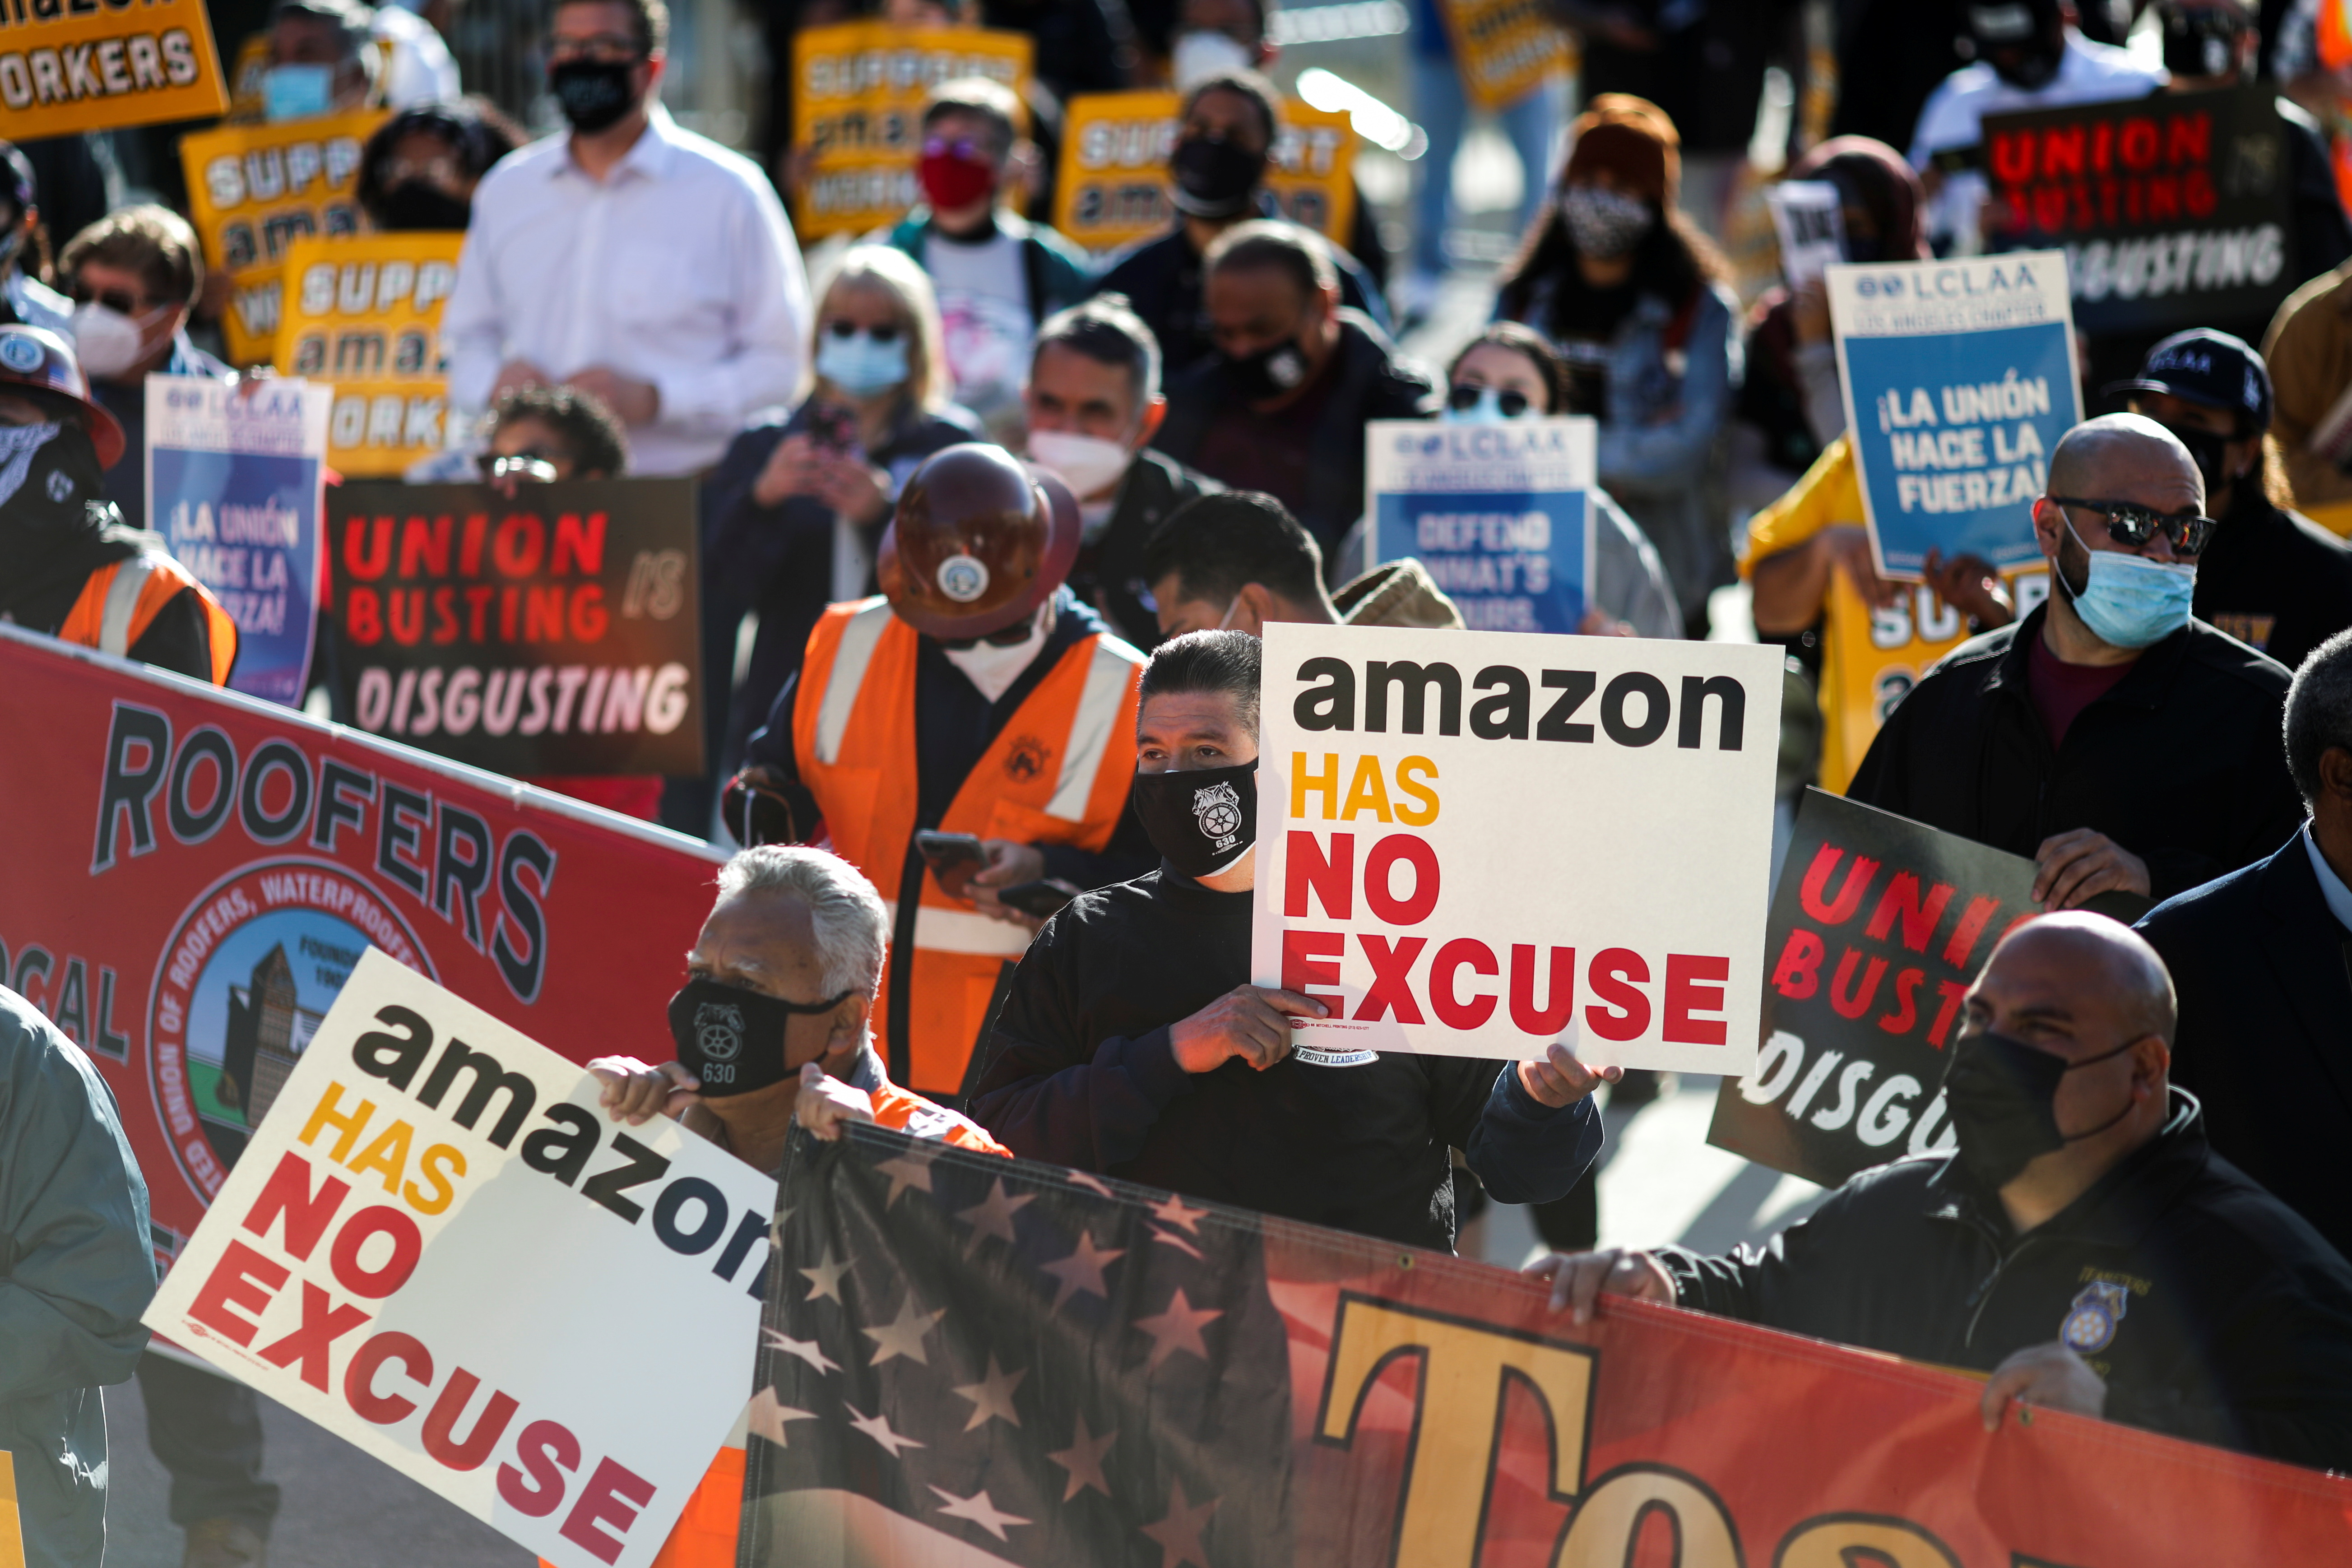 Federal labor agency says Amazon illegally fired climate activists, Digital Rumble, digitalrumble.com